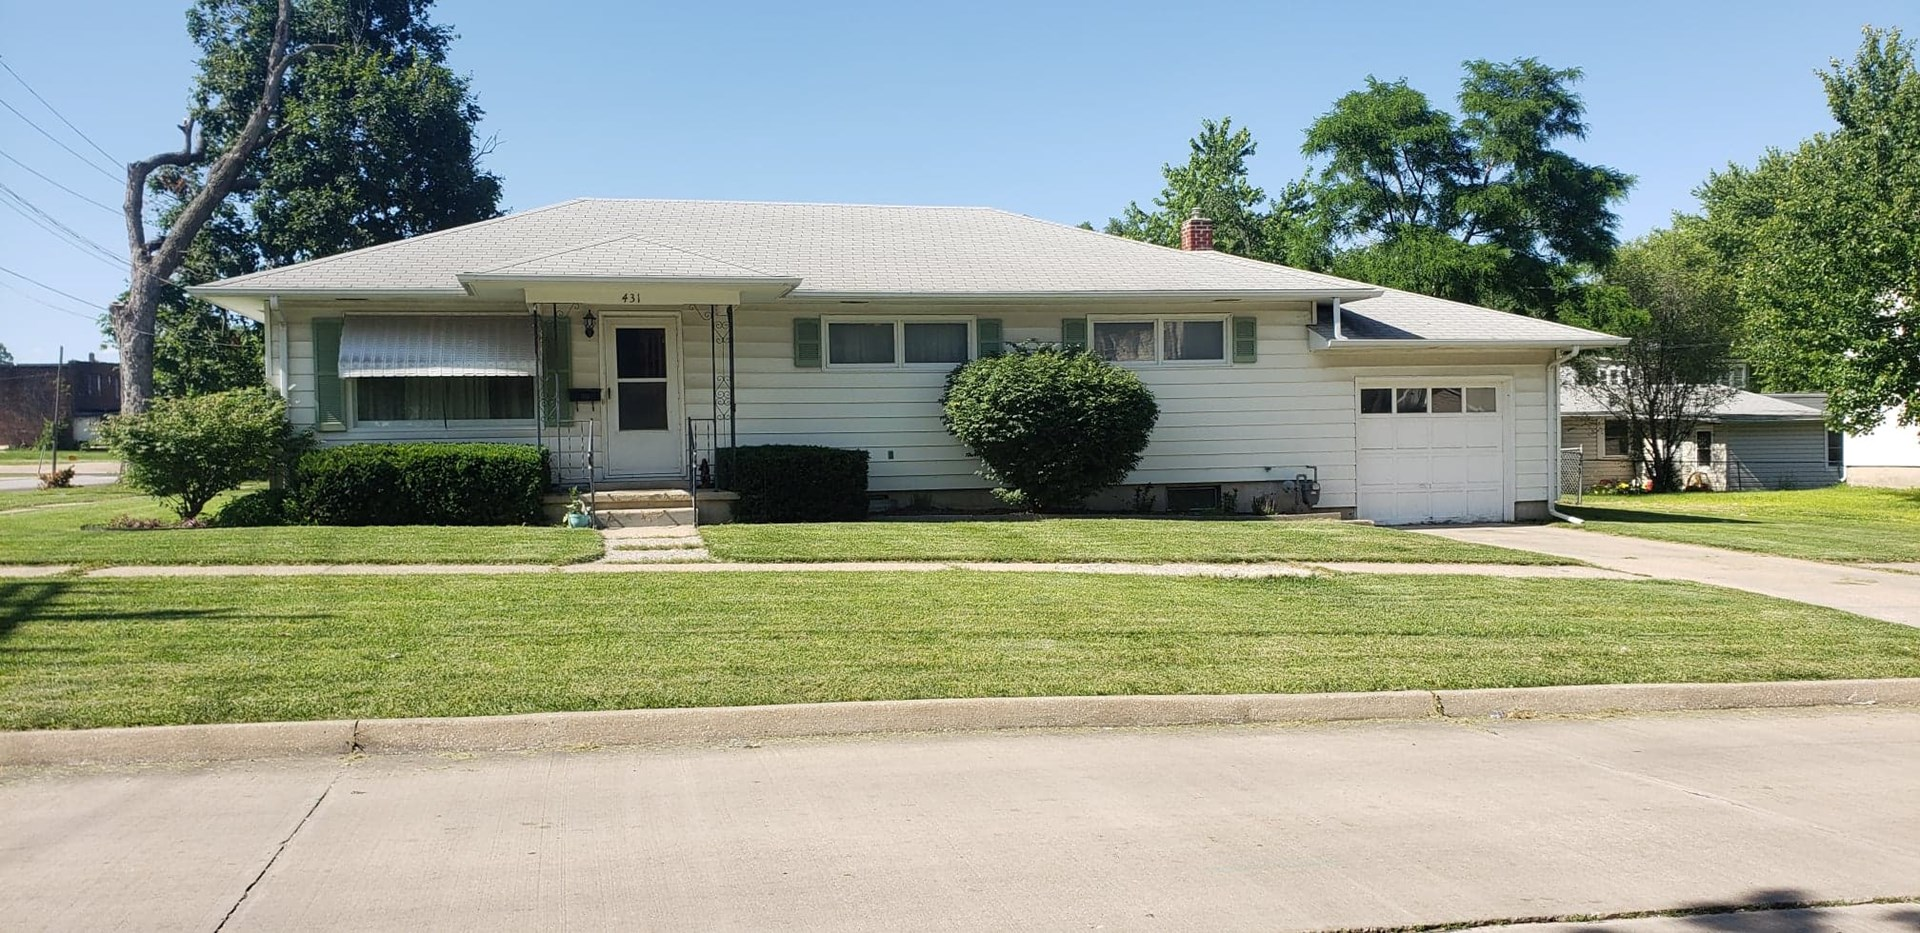 Ranch Home On A Corner Lot, Quarter Of An Acre